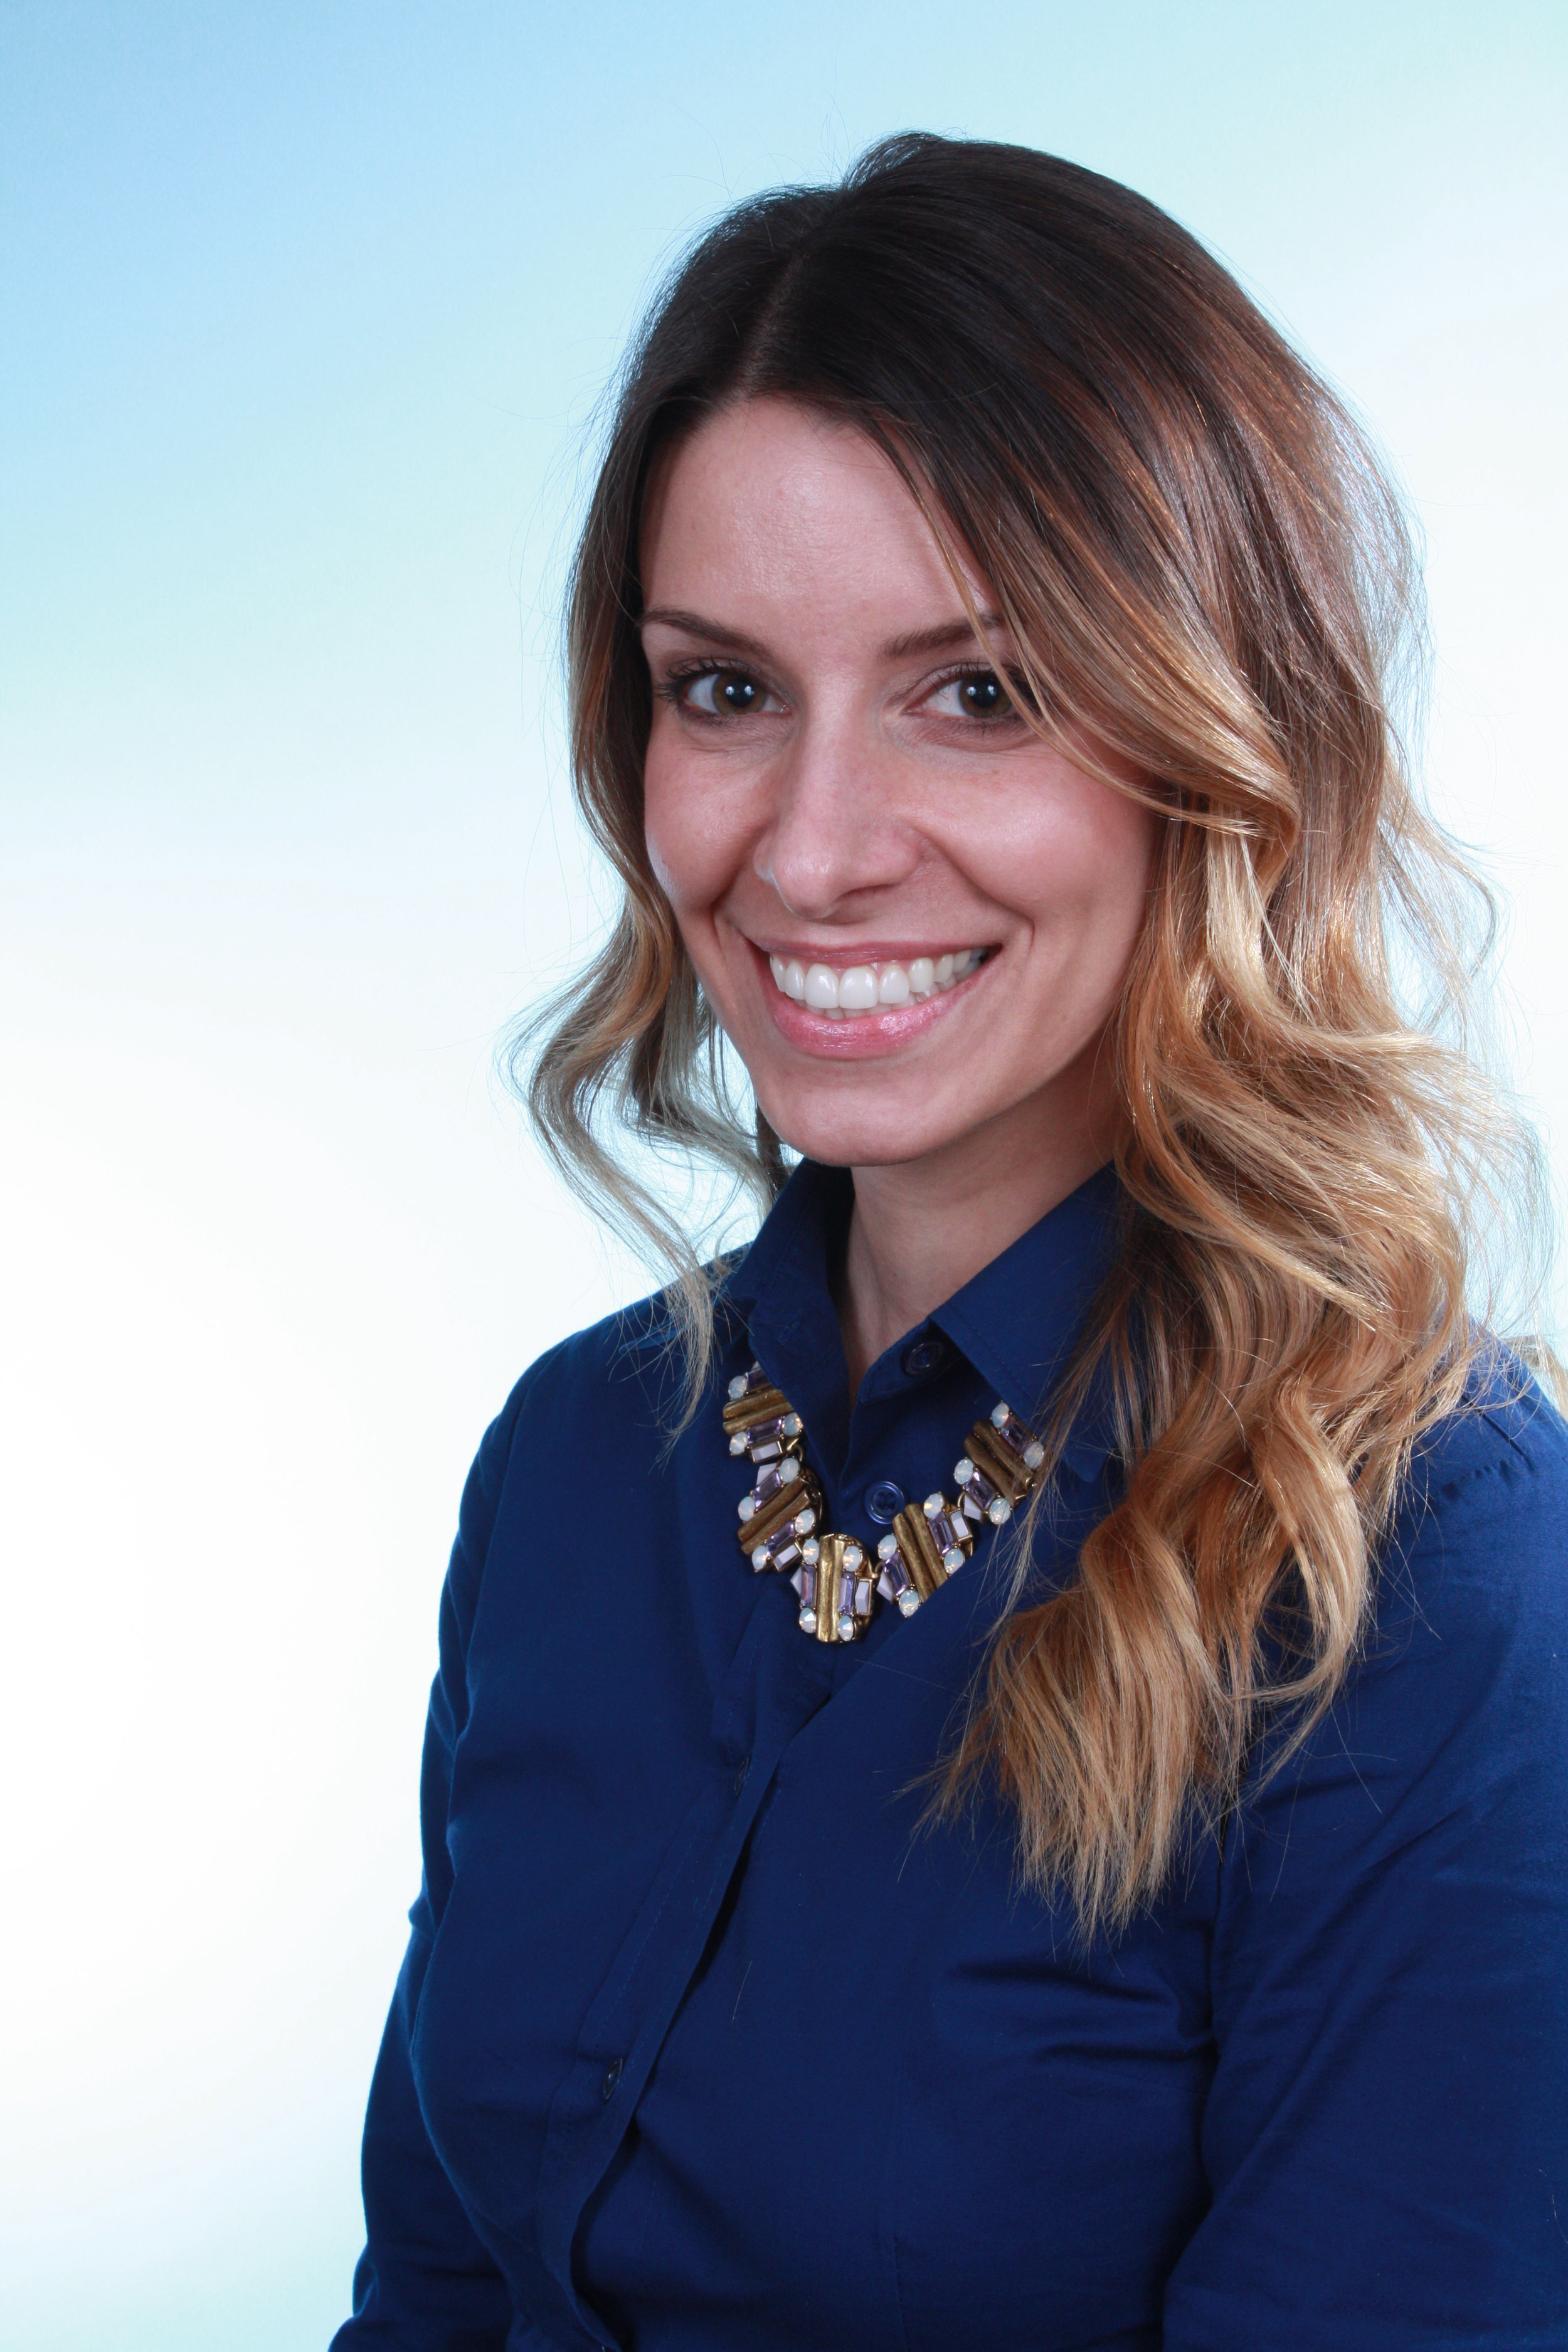 Dr. Samantha DeCaro, PsyD, is the Assistant Clinical Director at  The Renfrew Center  of Philadelphia, where she provides  training  and clinical supervision to the Center's primary therapists and post-doctoral residents. She has a wide range of experience providing individual, family, and group therapy for not only eating disorders, but also for trauma, personality disorders, substance abuse, and mood disorders. Dr. DeCaro has been featured in various media as a local eating disorder expert on various  radio  shows,  television  programs, and online magazines.